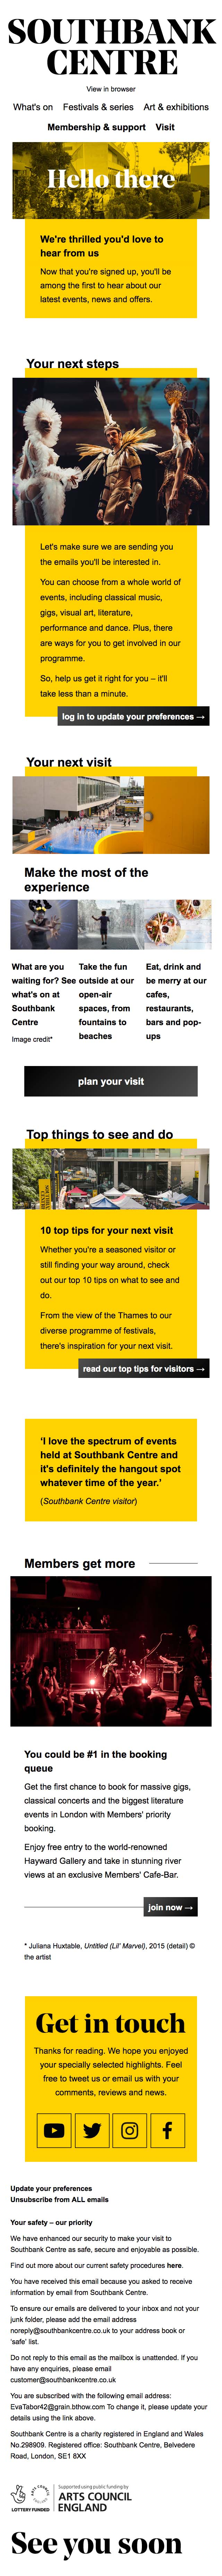 Welcome to Southbank Centre - thanks for signing up - mobile view